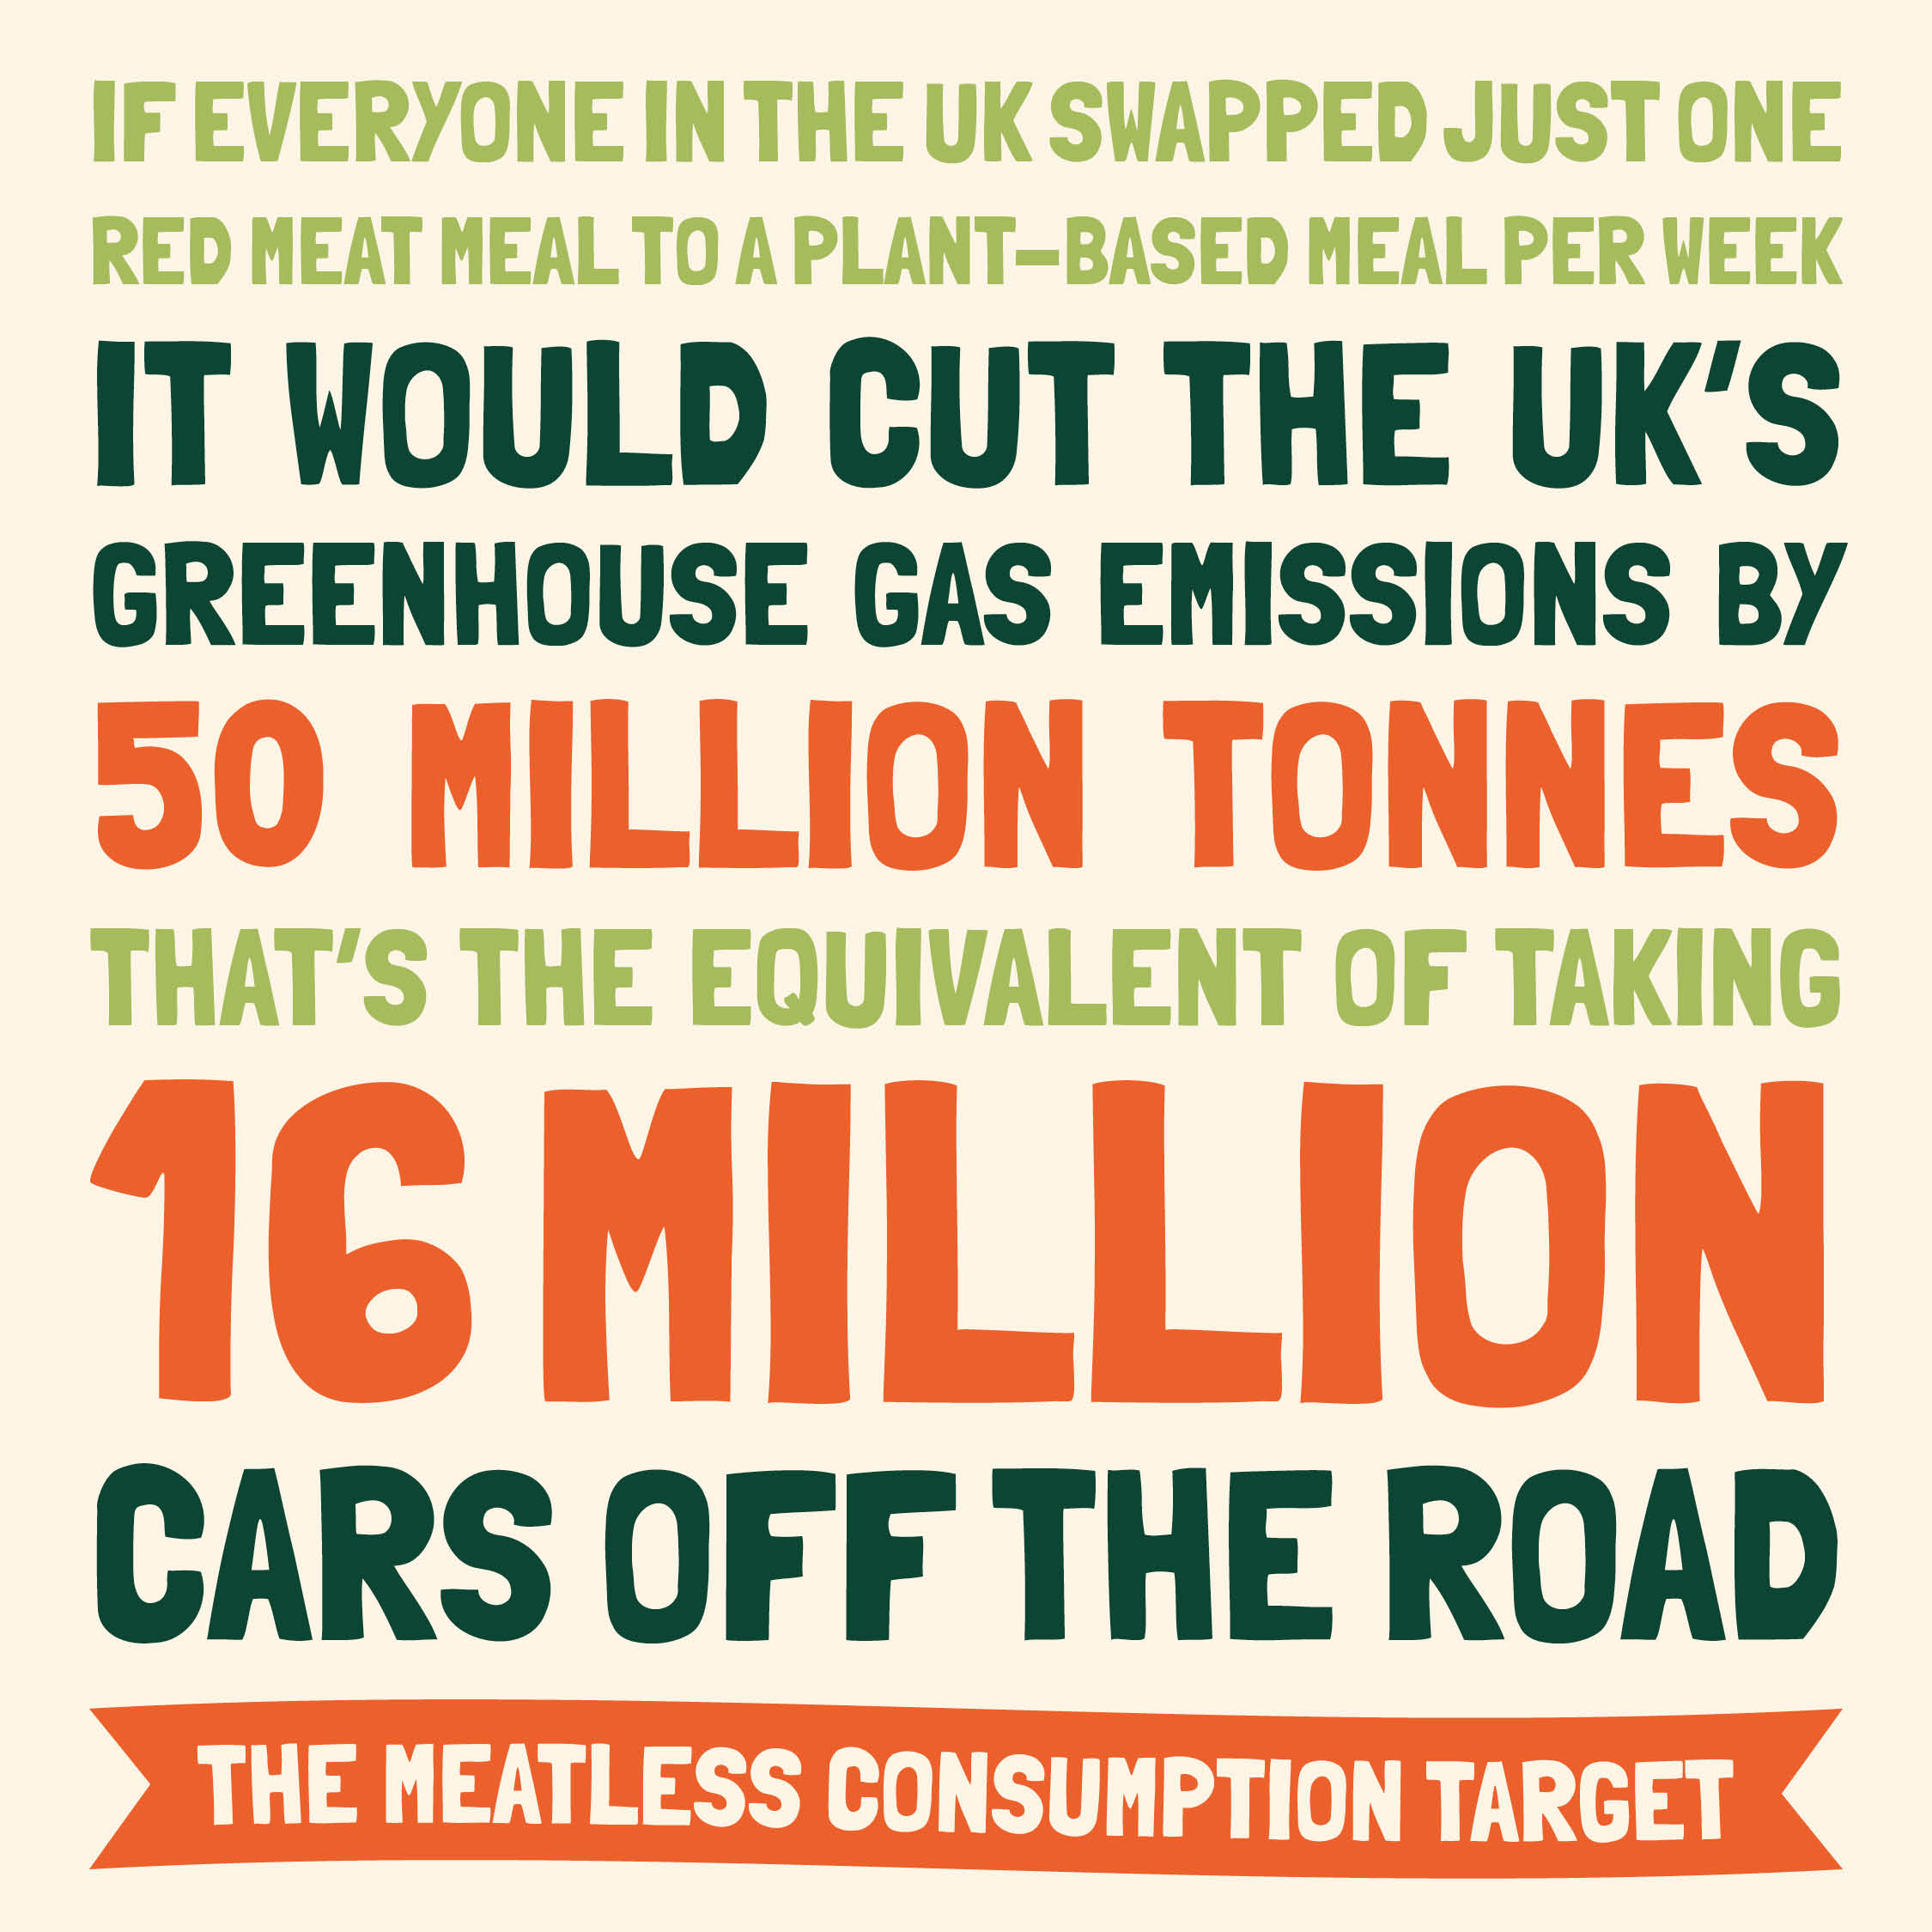 If everyone swapped just one red meat meal to plant-based we'd cut the UKs greenhouse gas emissions by 50 million tonnes